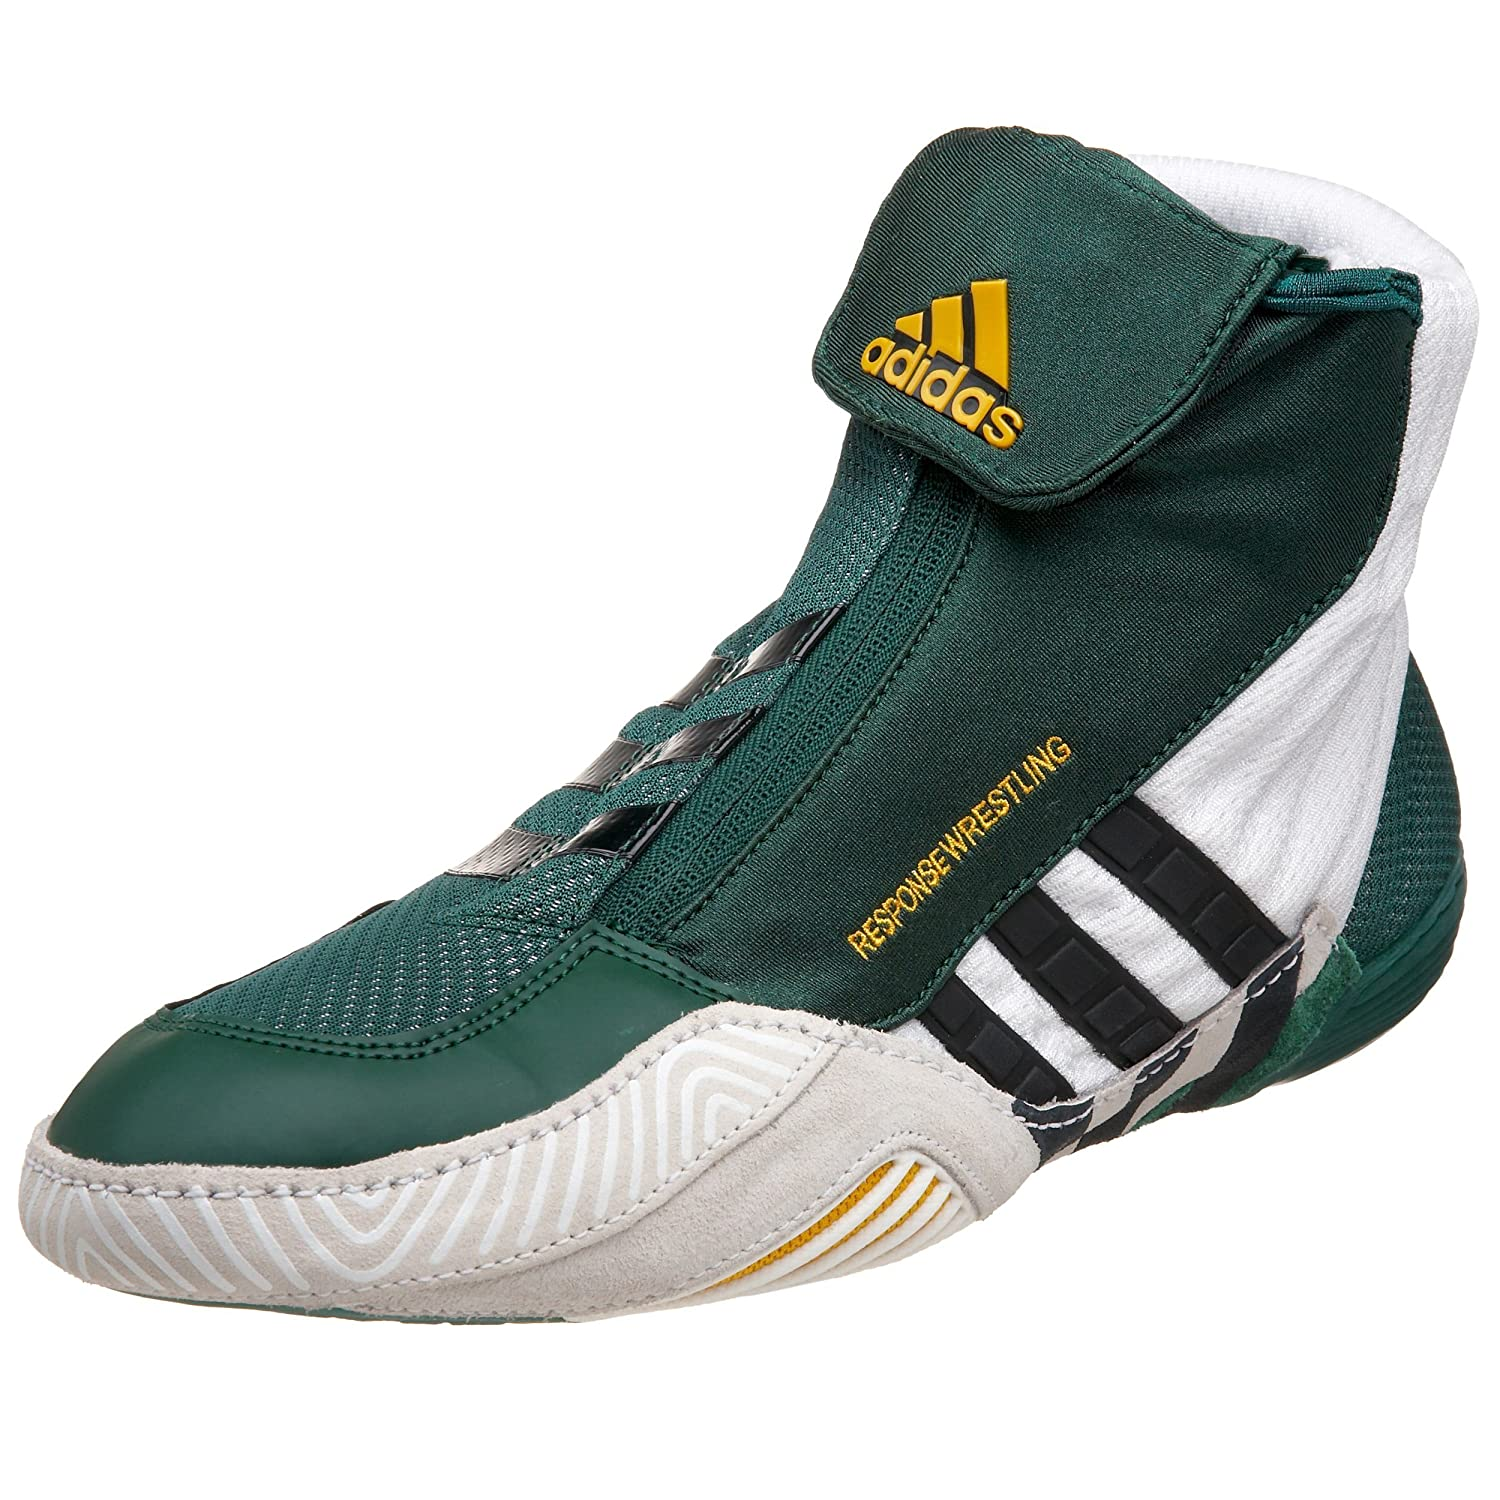 | adidas Men's Response Wrestling Shoe, Green